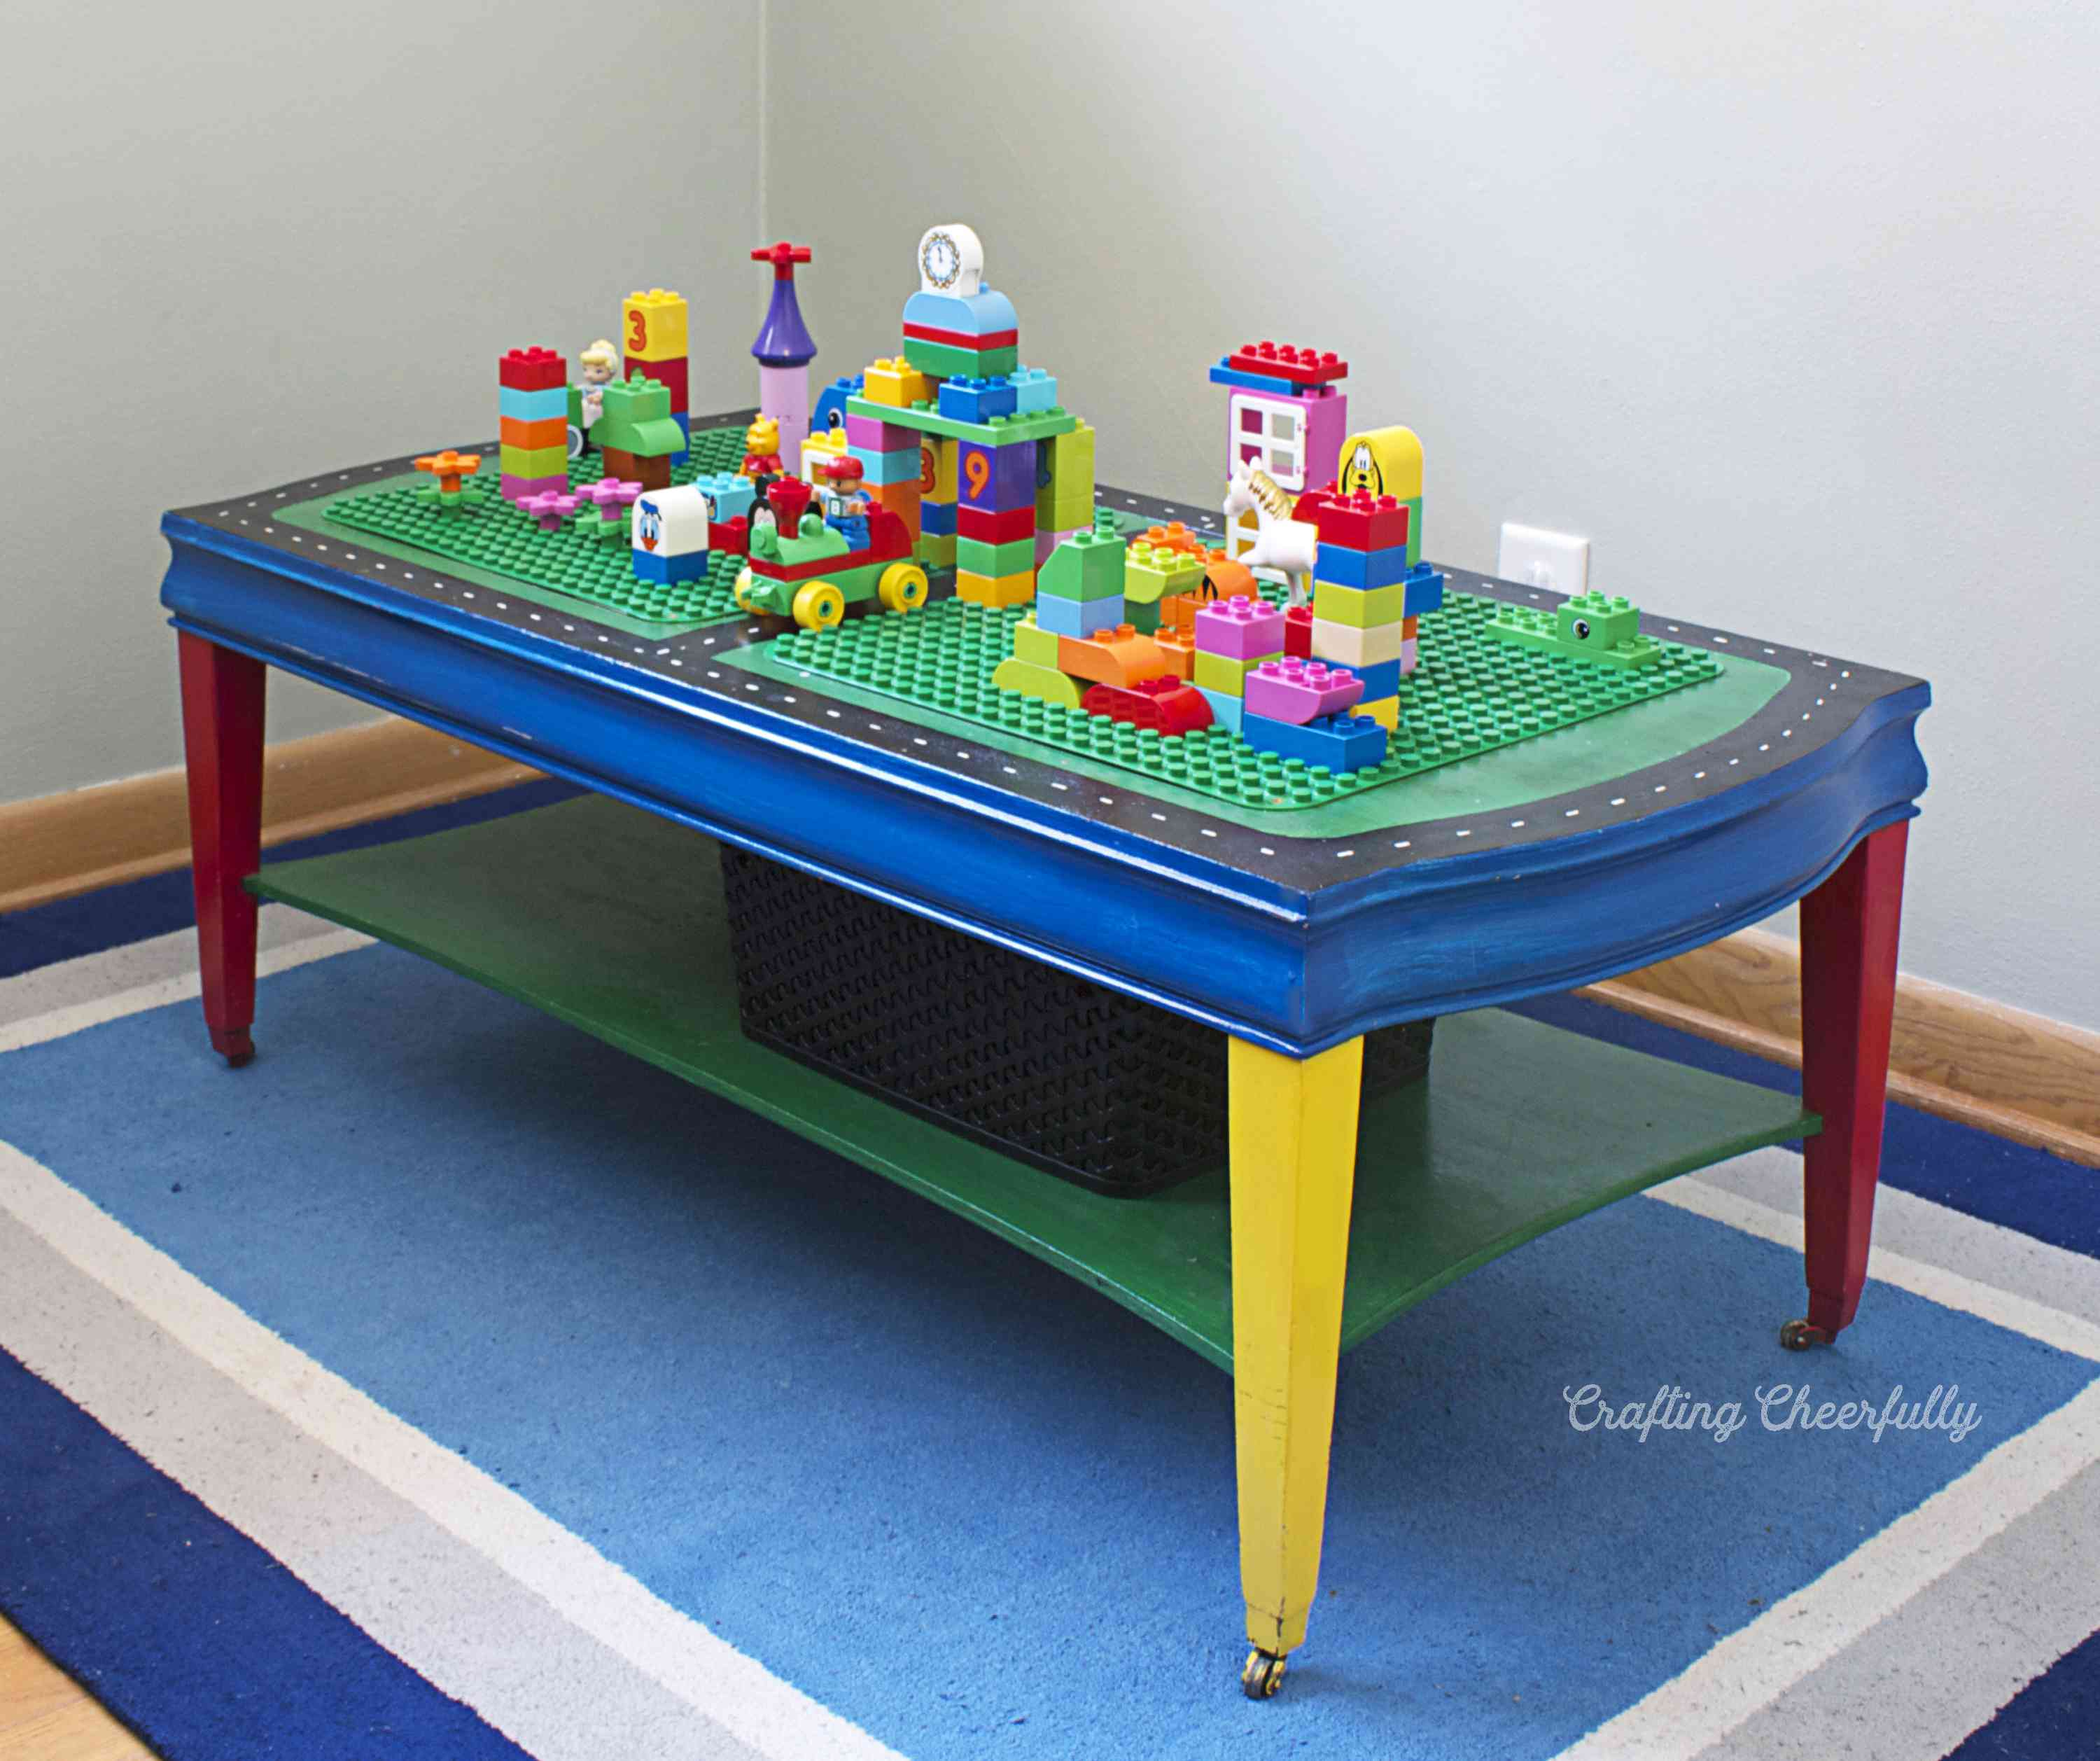 A lego table on a colorful rug